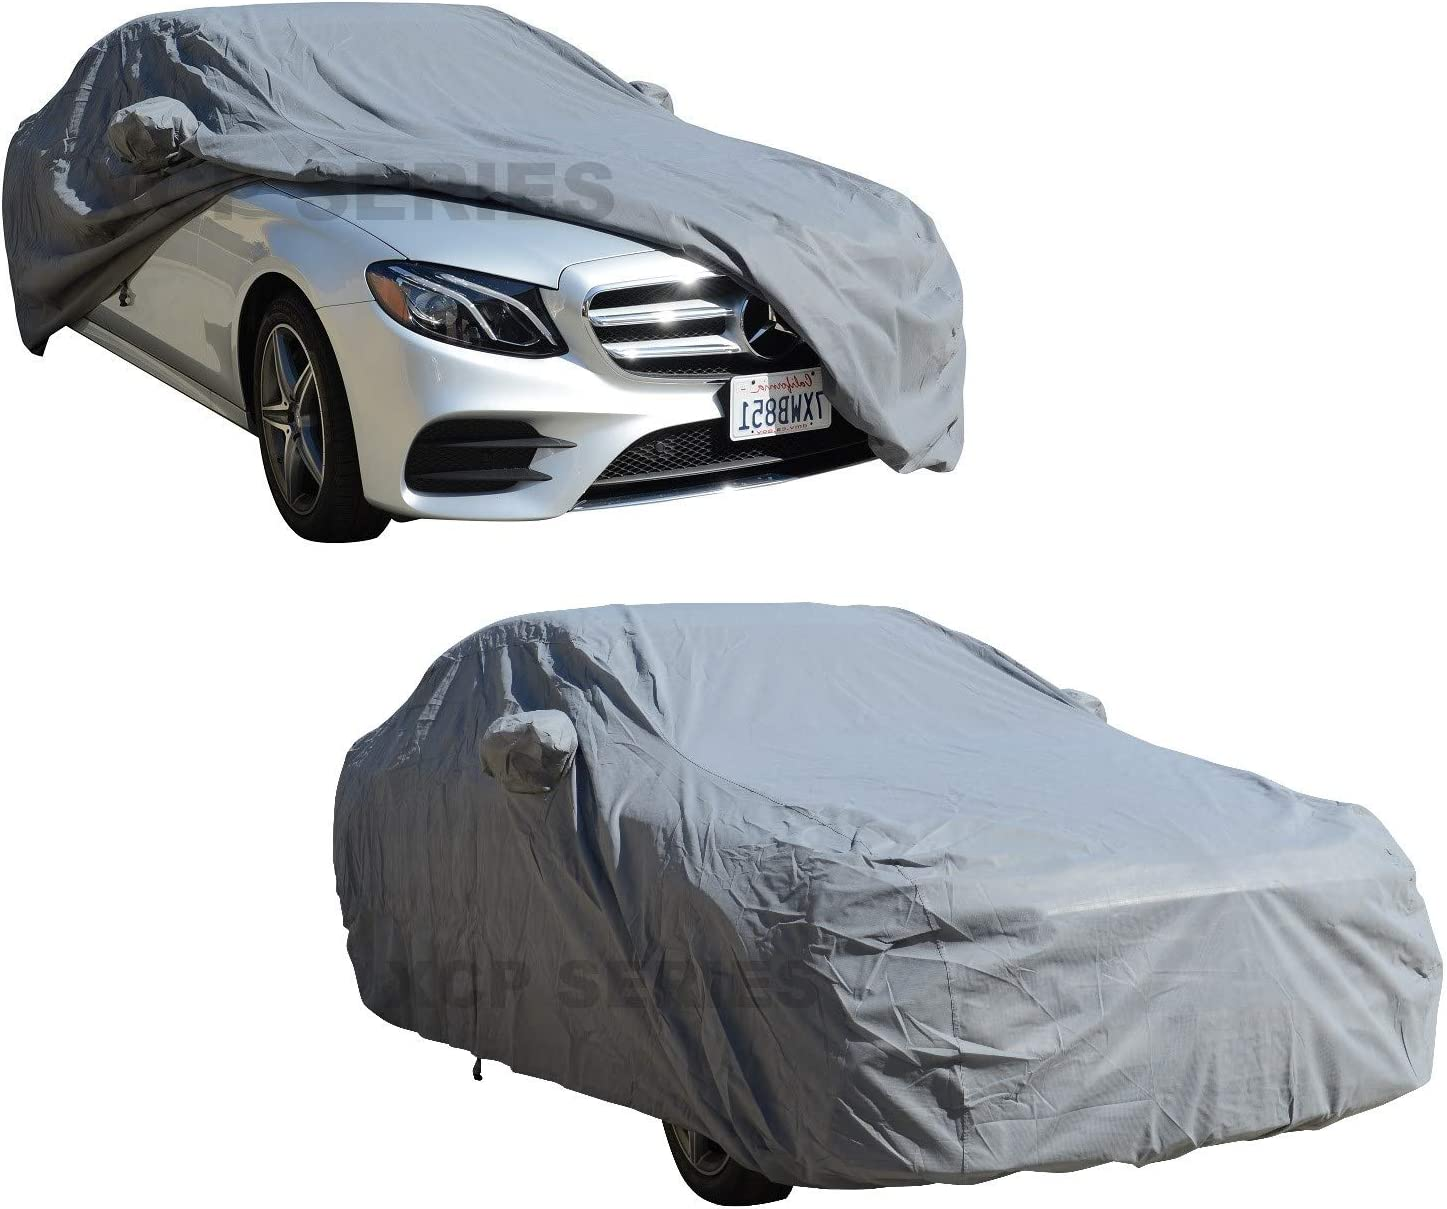 MERCEDES S-CLASS COUPE INDOOR OUTDOOR FULLY WATERPROOF CAR COVER COTTON LINED